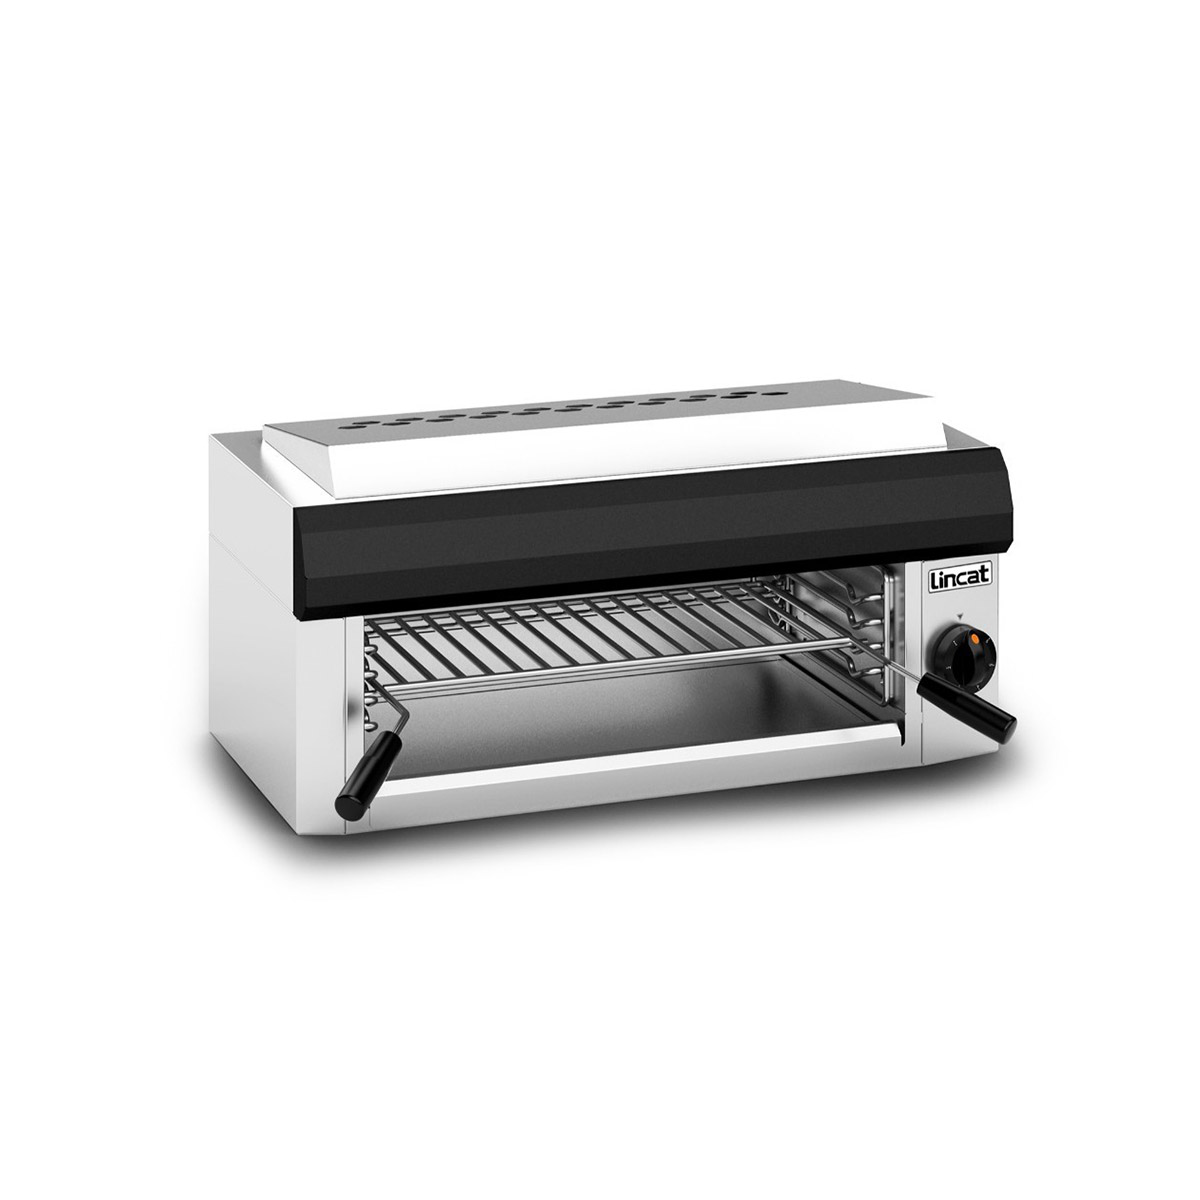 Lincat Opus 800 Electric Salamander Grill Model: OE8304